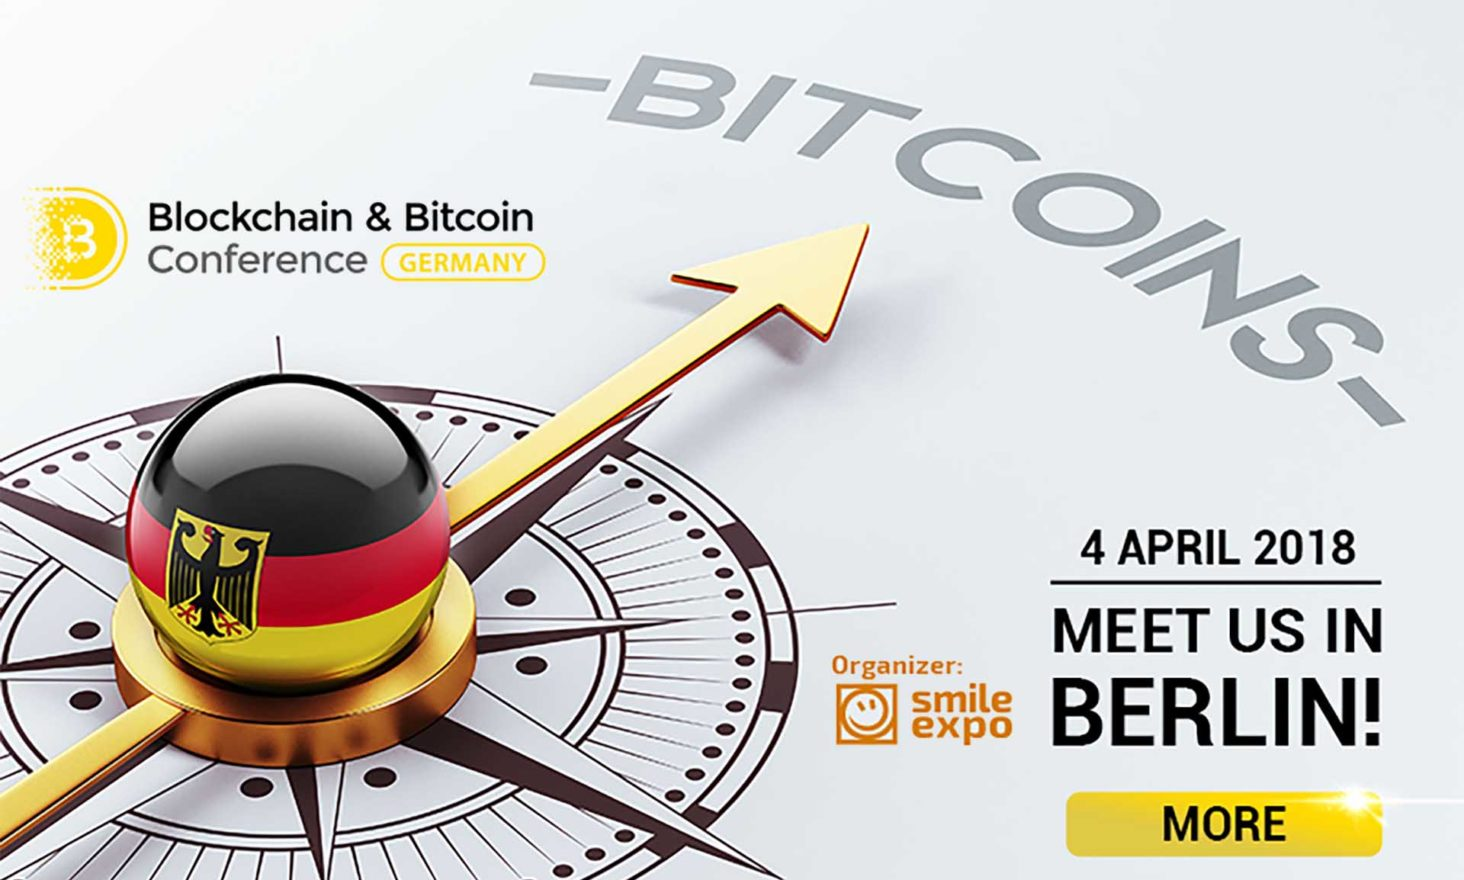 Blockchain Implementation, ICO for Start-ups, Analytics of Cryptocurrencies: This and More at Blockchain & Bitcoin Conference Germany